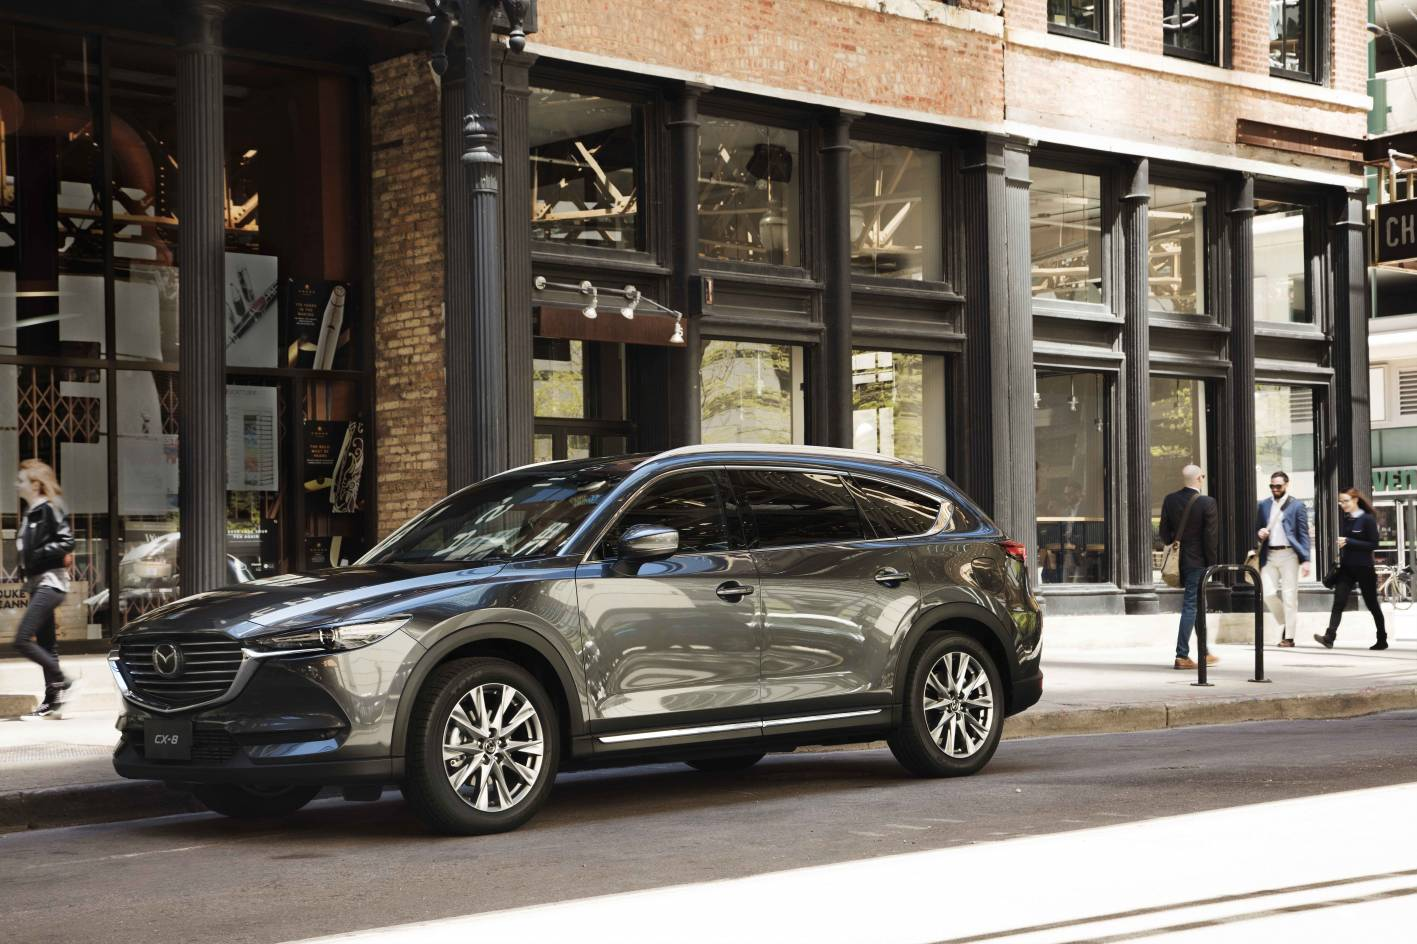 Mazda's diesel-only seven-seat CX-8 SUV updated for the 2020 model year